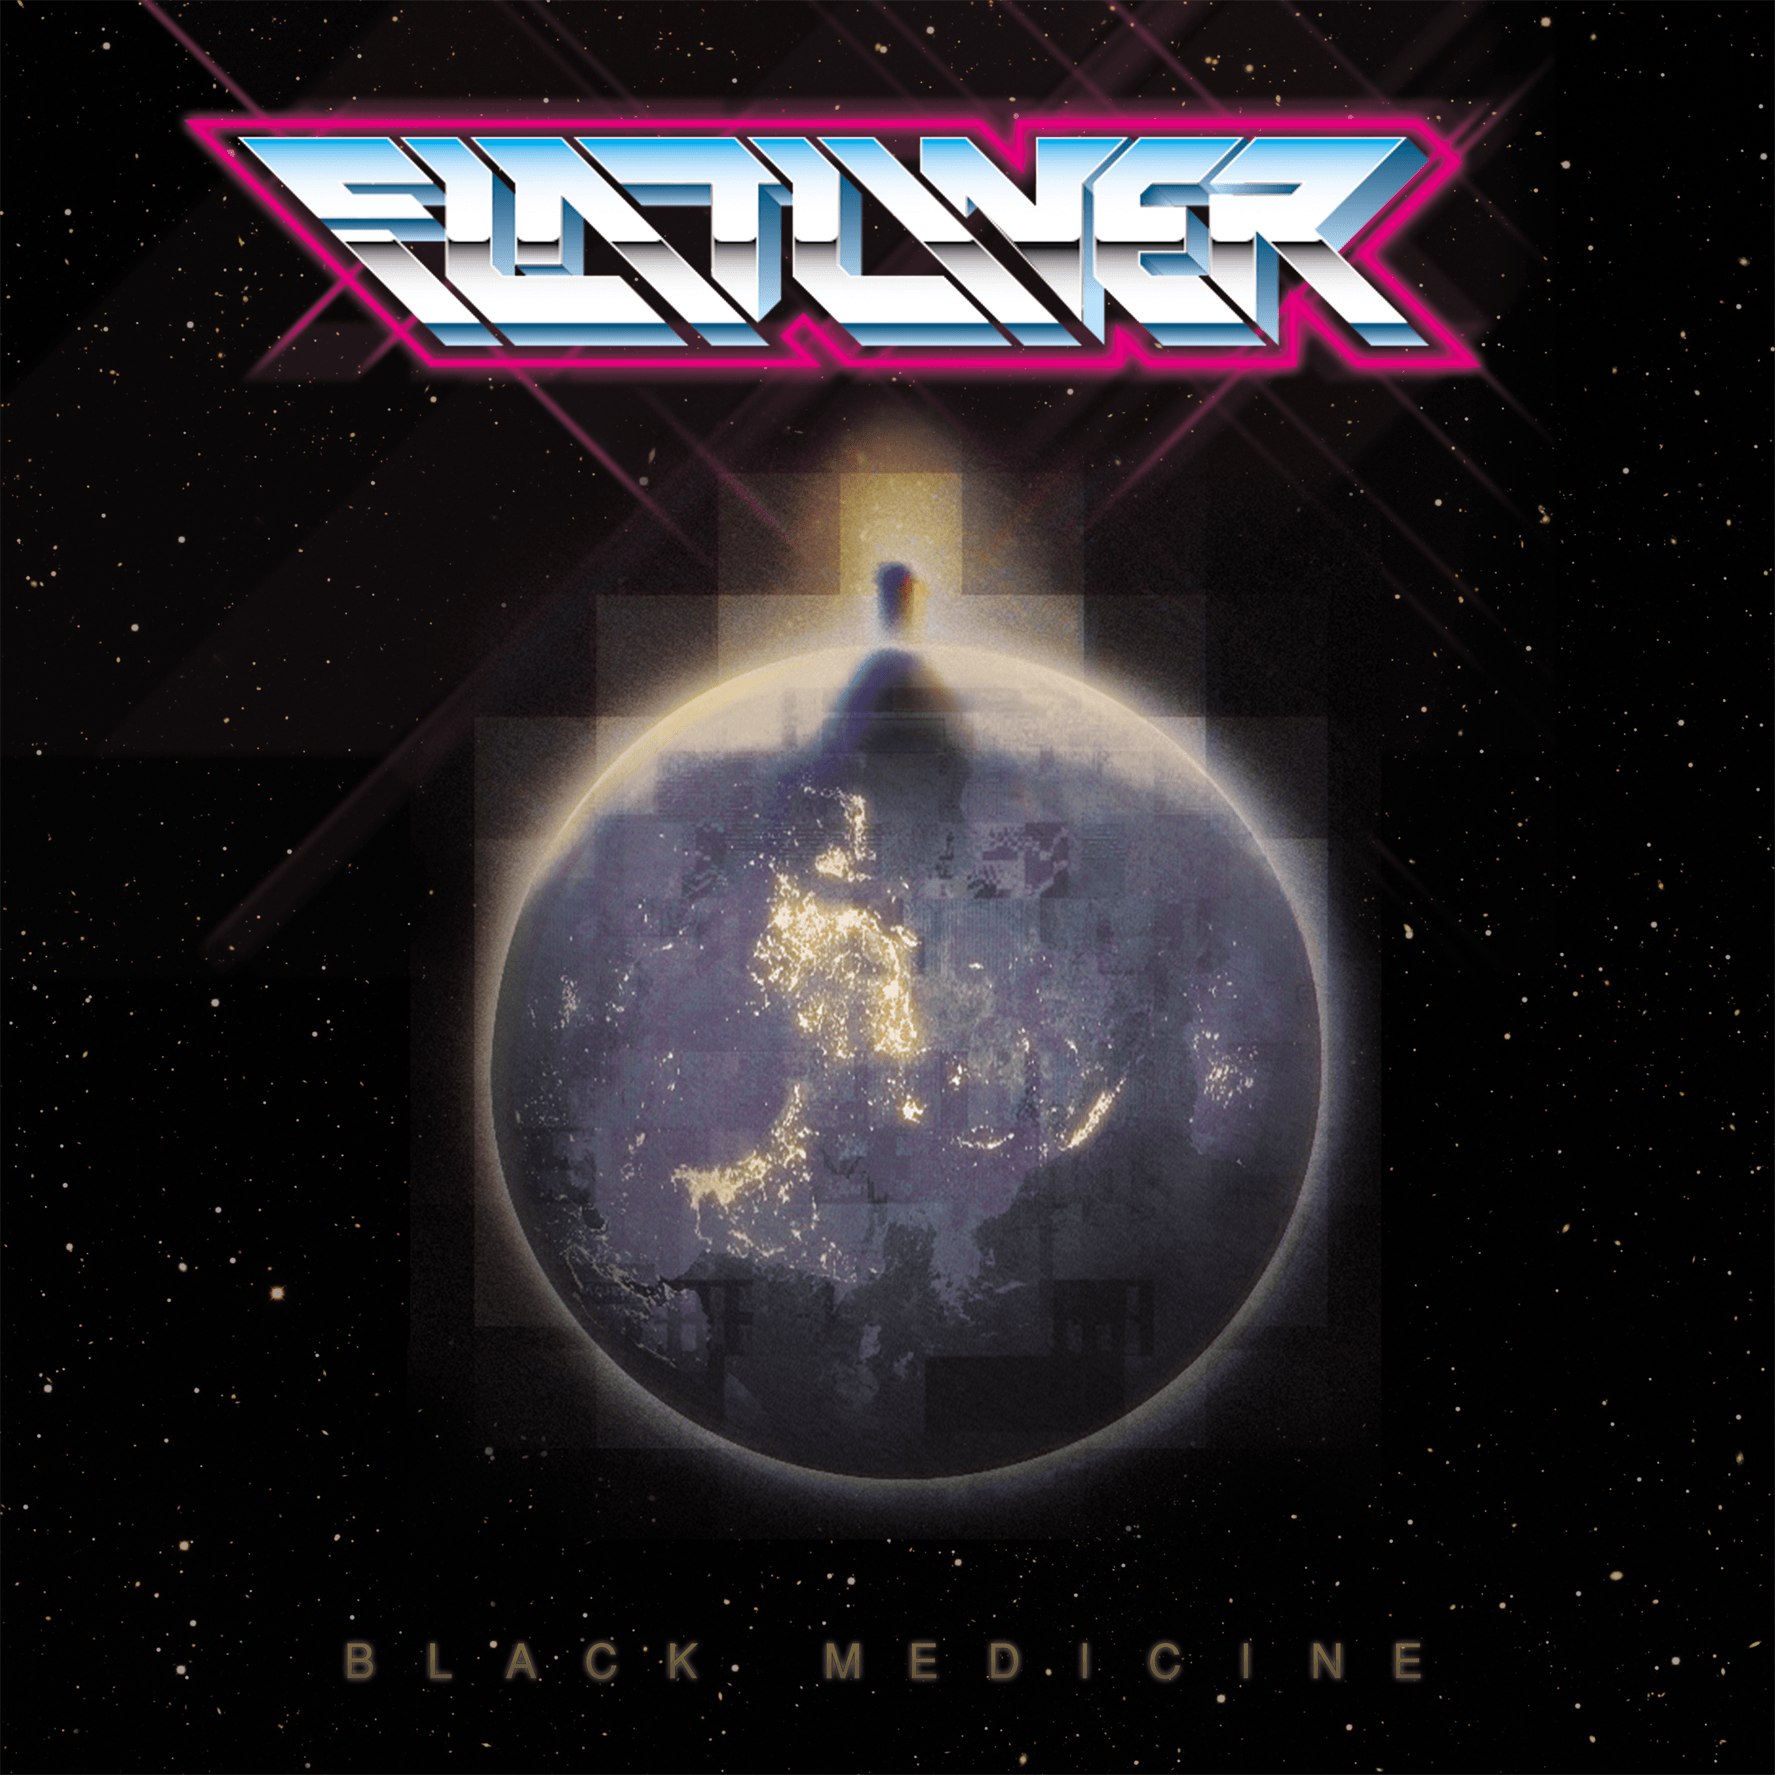 Flatliner - Black Medicine (HD025) - cover